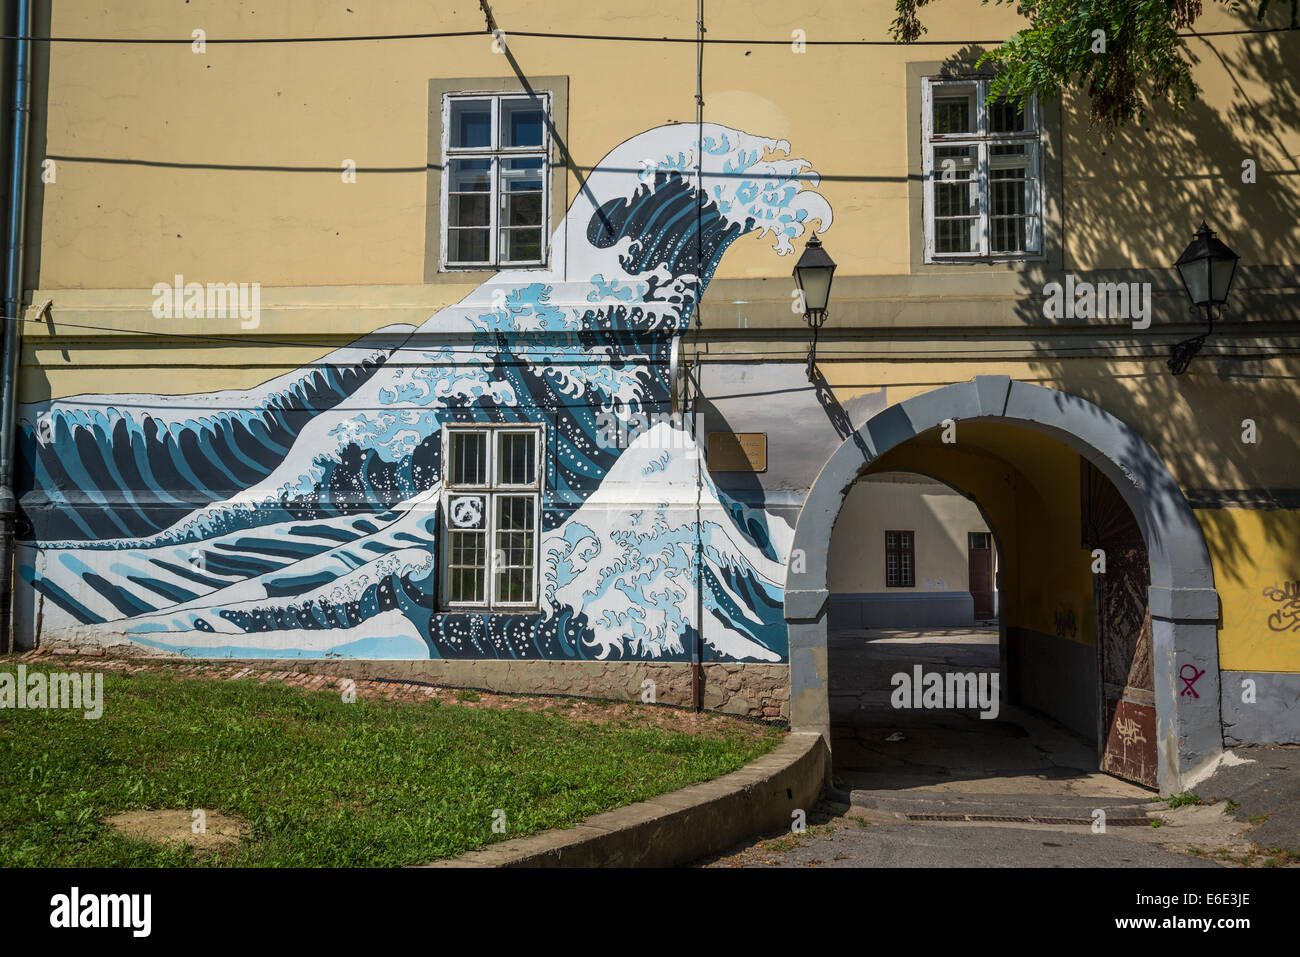 Hokusai Wave painted at the entrance of Grammar School, Tvrdja, Osijek, Slavonia, Croatia Stock Photo